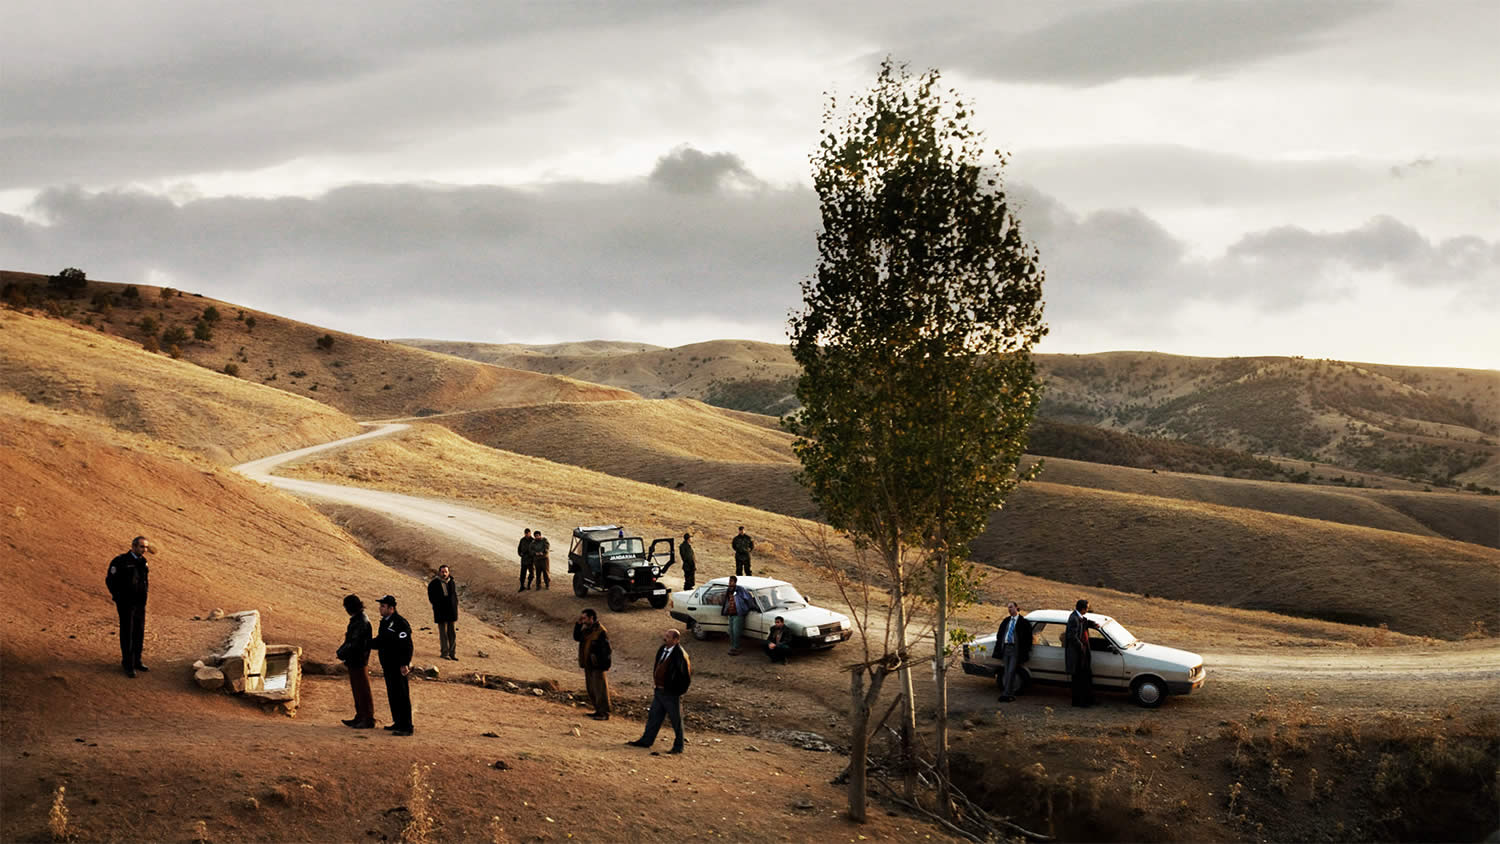 cars and men in field, in Once Upon a Time in Anatolia